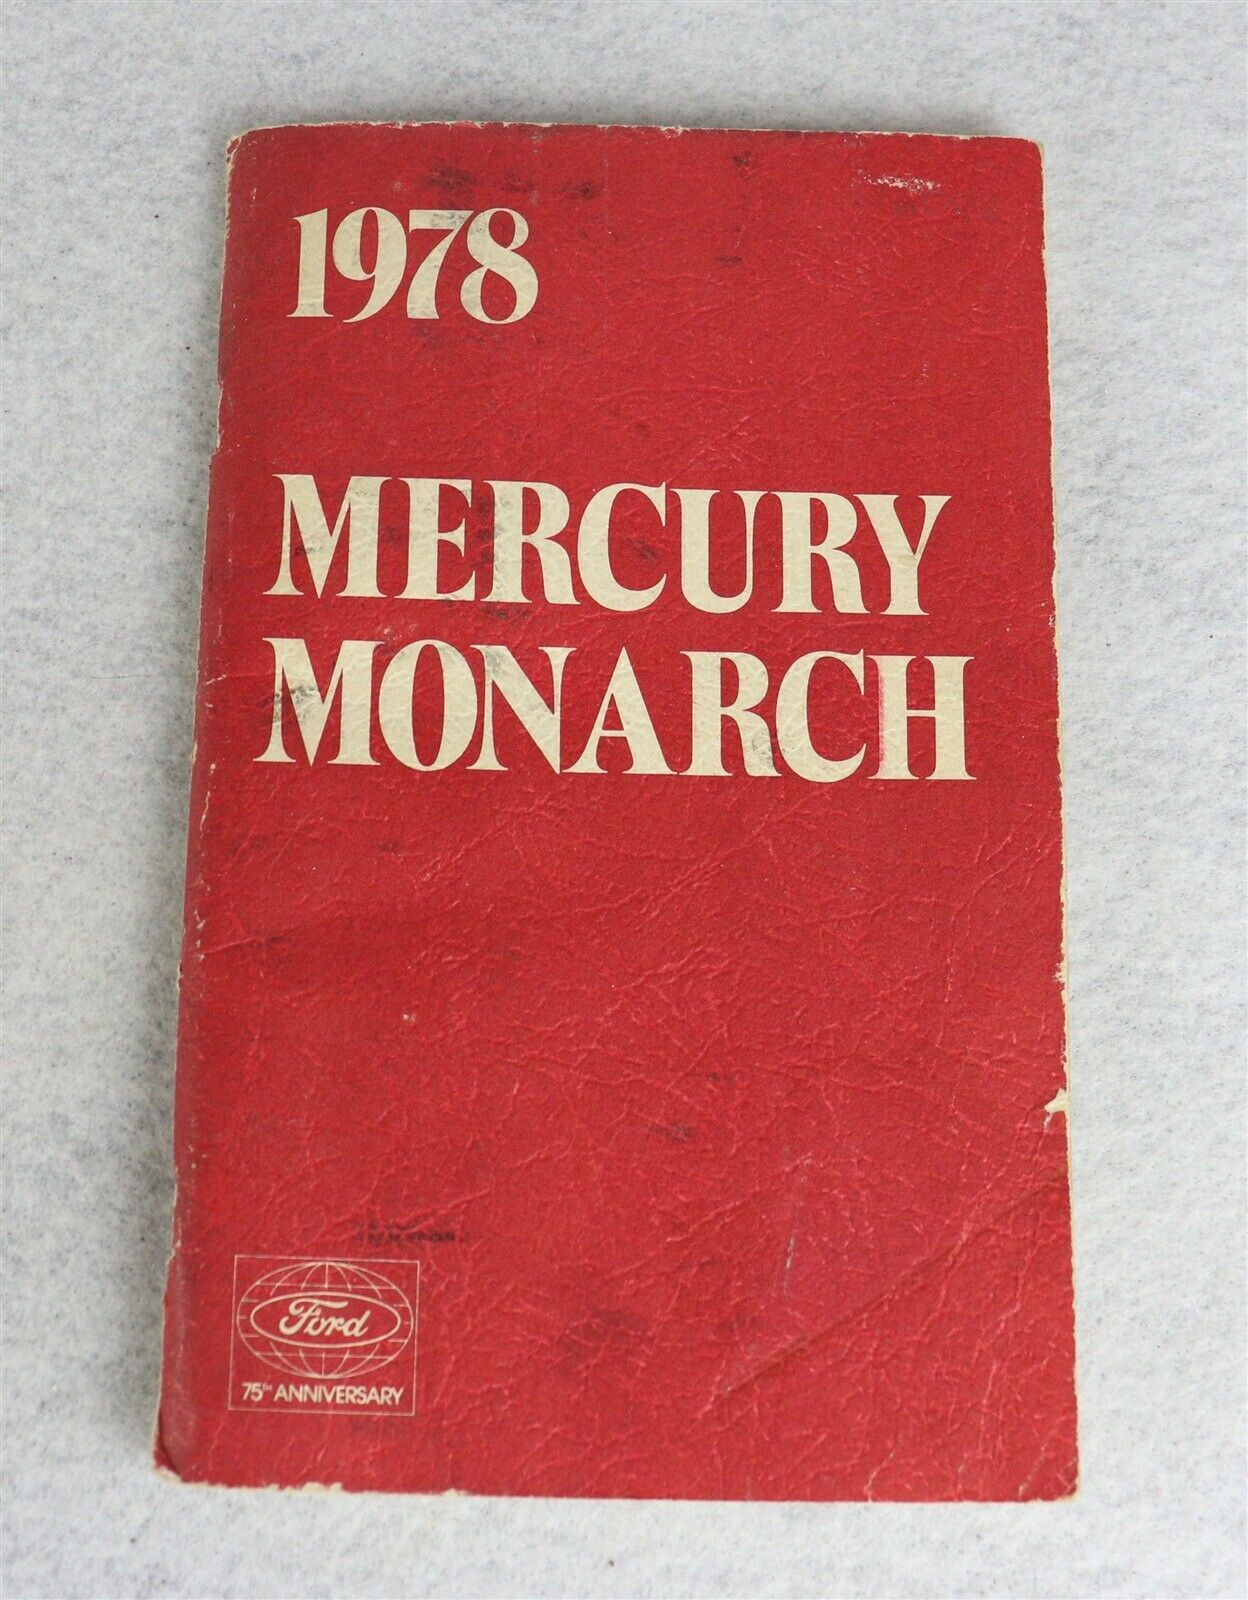 1978 Ford Mercury Monarch 75 Anniversary Owner's Manual